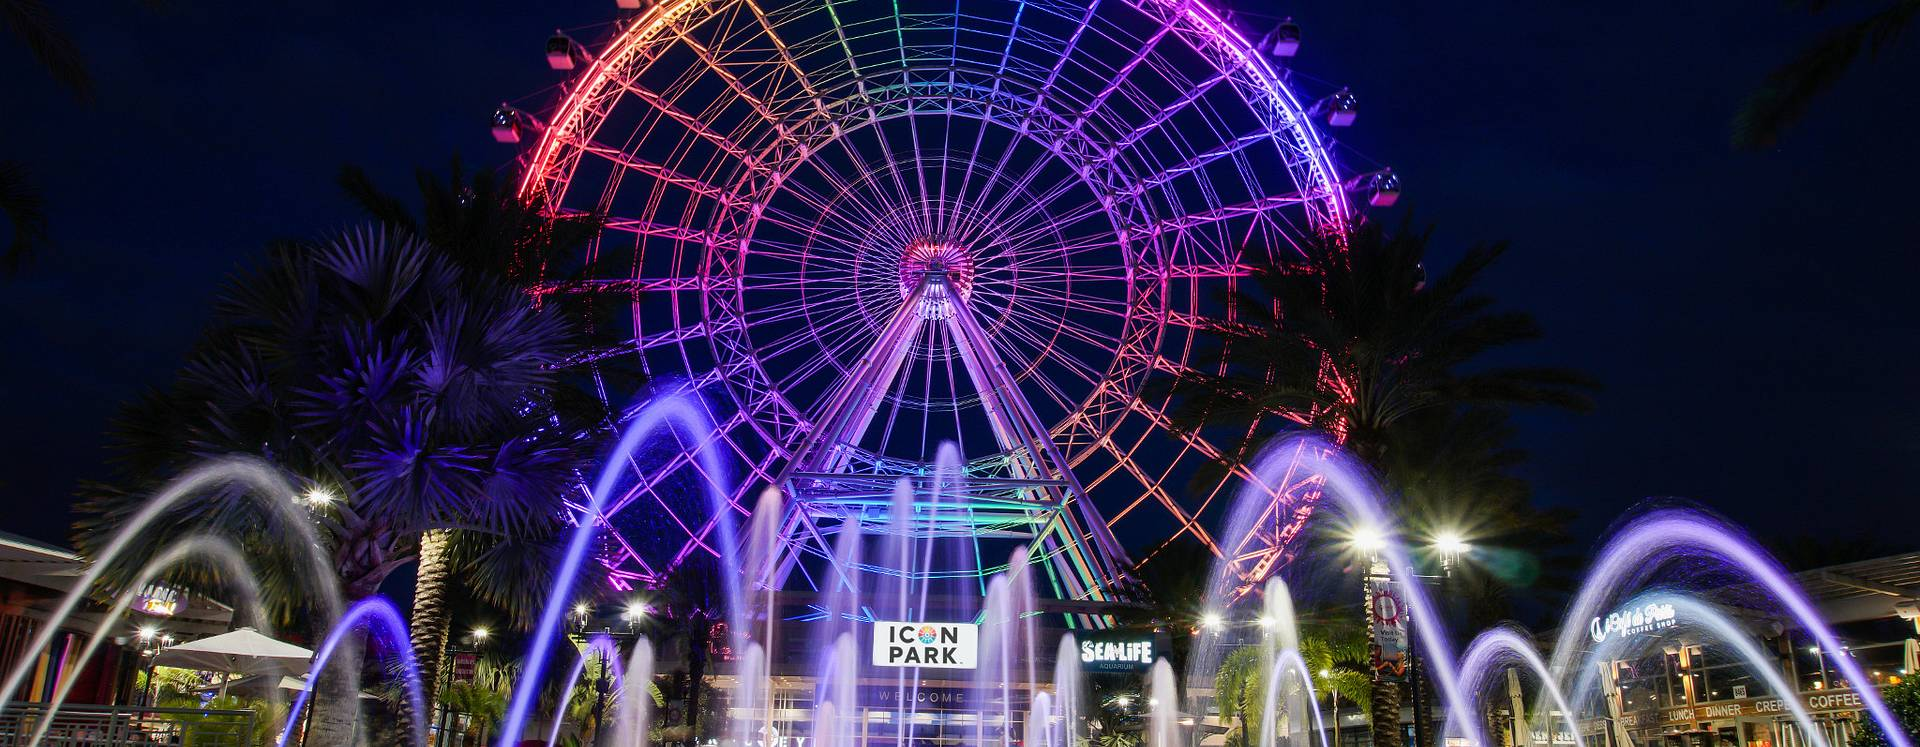 The Wheel at ICON Park lights up the sky at night with water fountains in the foreground.